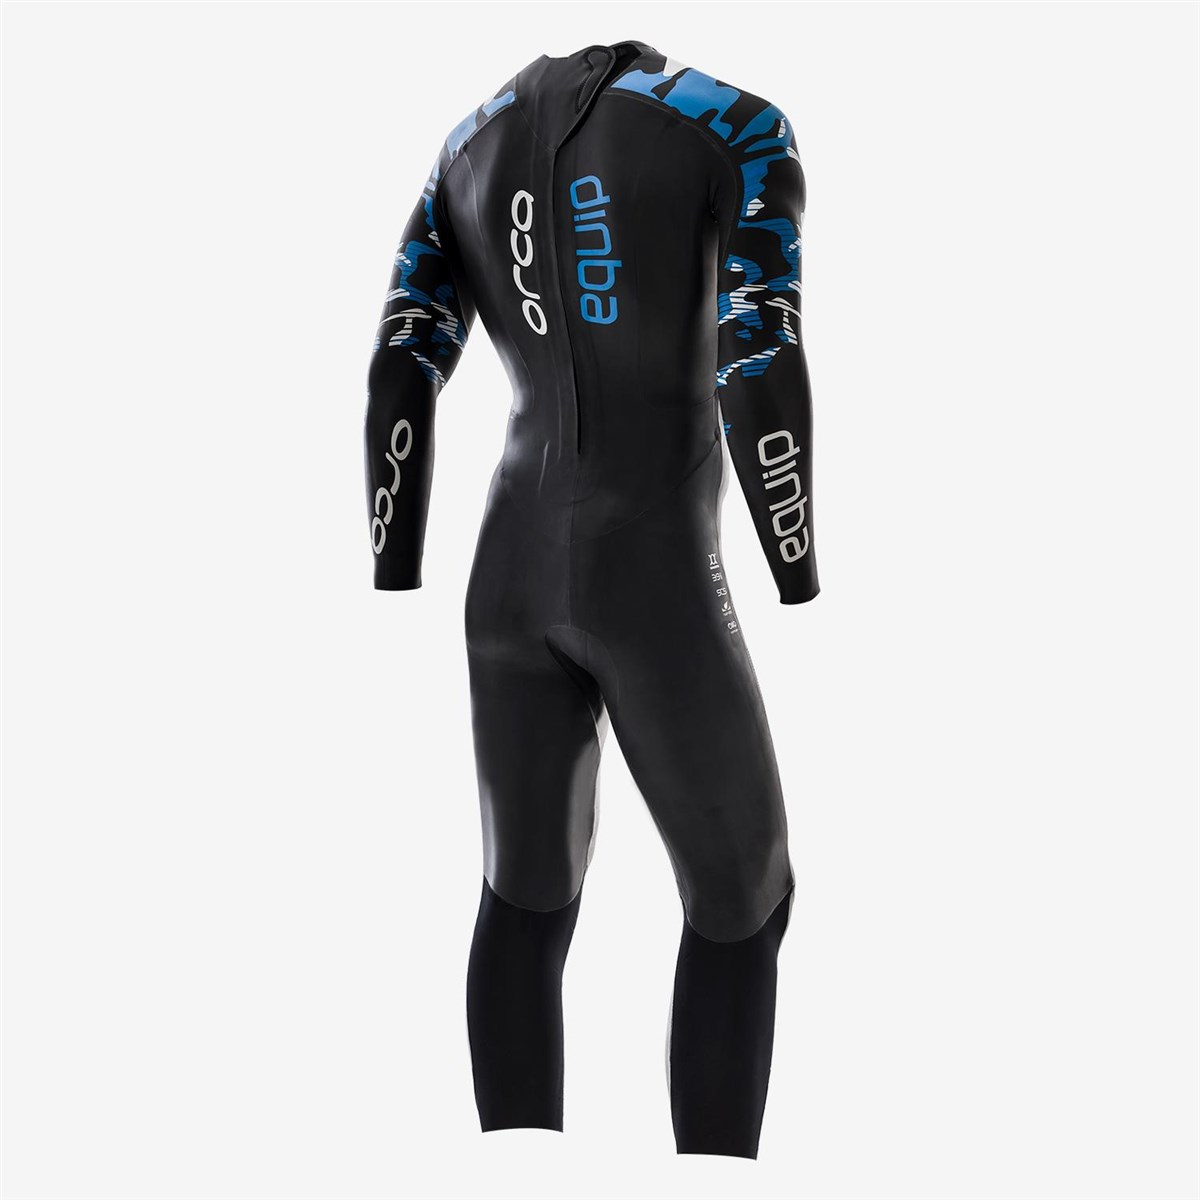 Orca Equip Full Sleeve Wetsuit